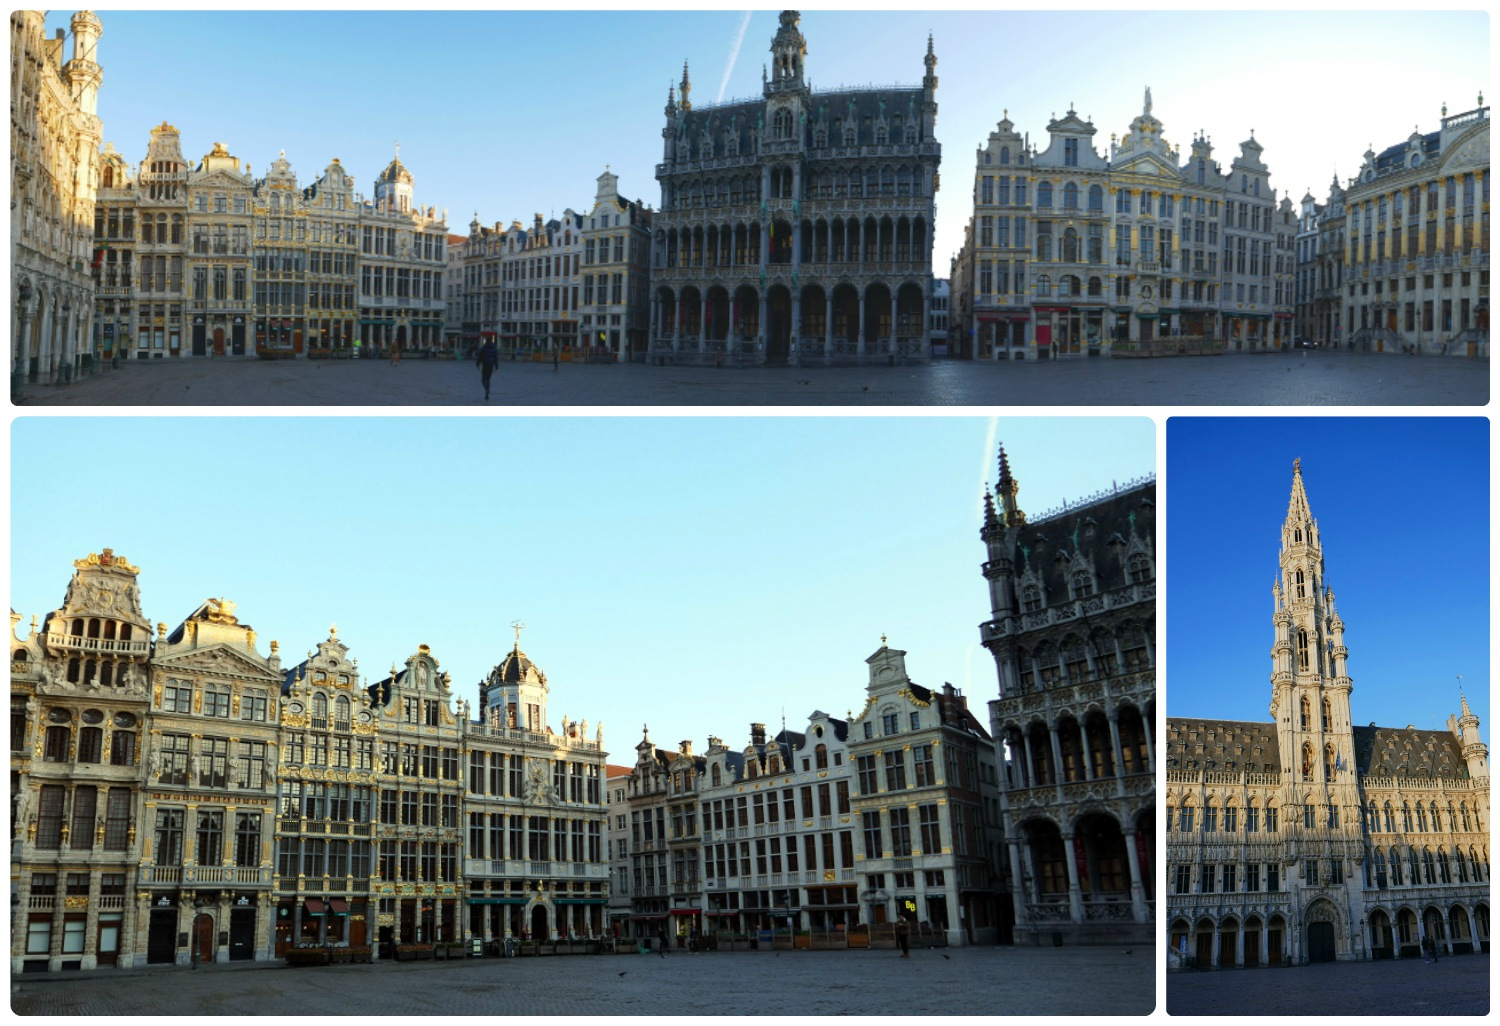 Views of the La Grand-Palace in Brussels, Belgium. We arrived early Sunday morning to find the square calm, with only a couple of tourists in sight.